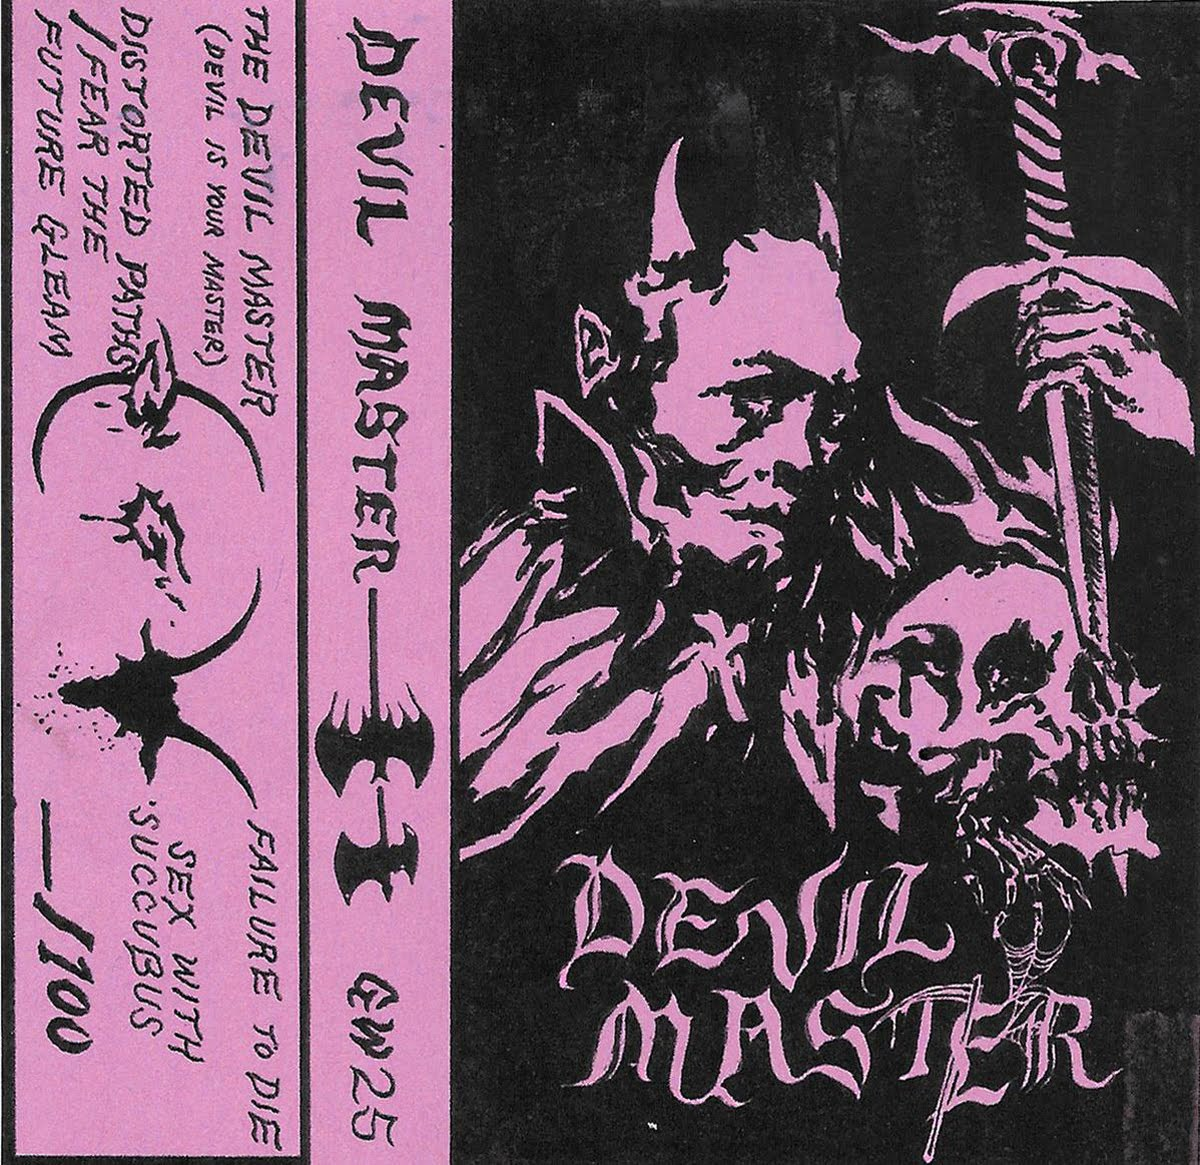 burnoutsyndrome: DEVIL MASTER - TAPE